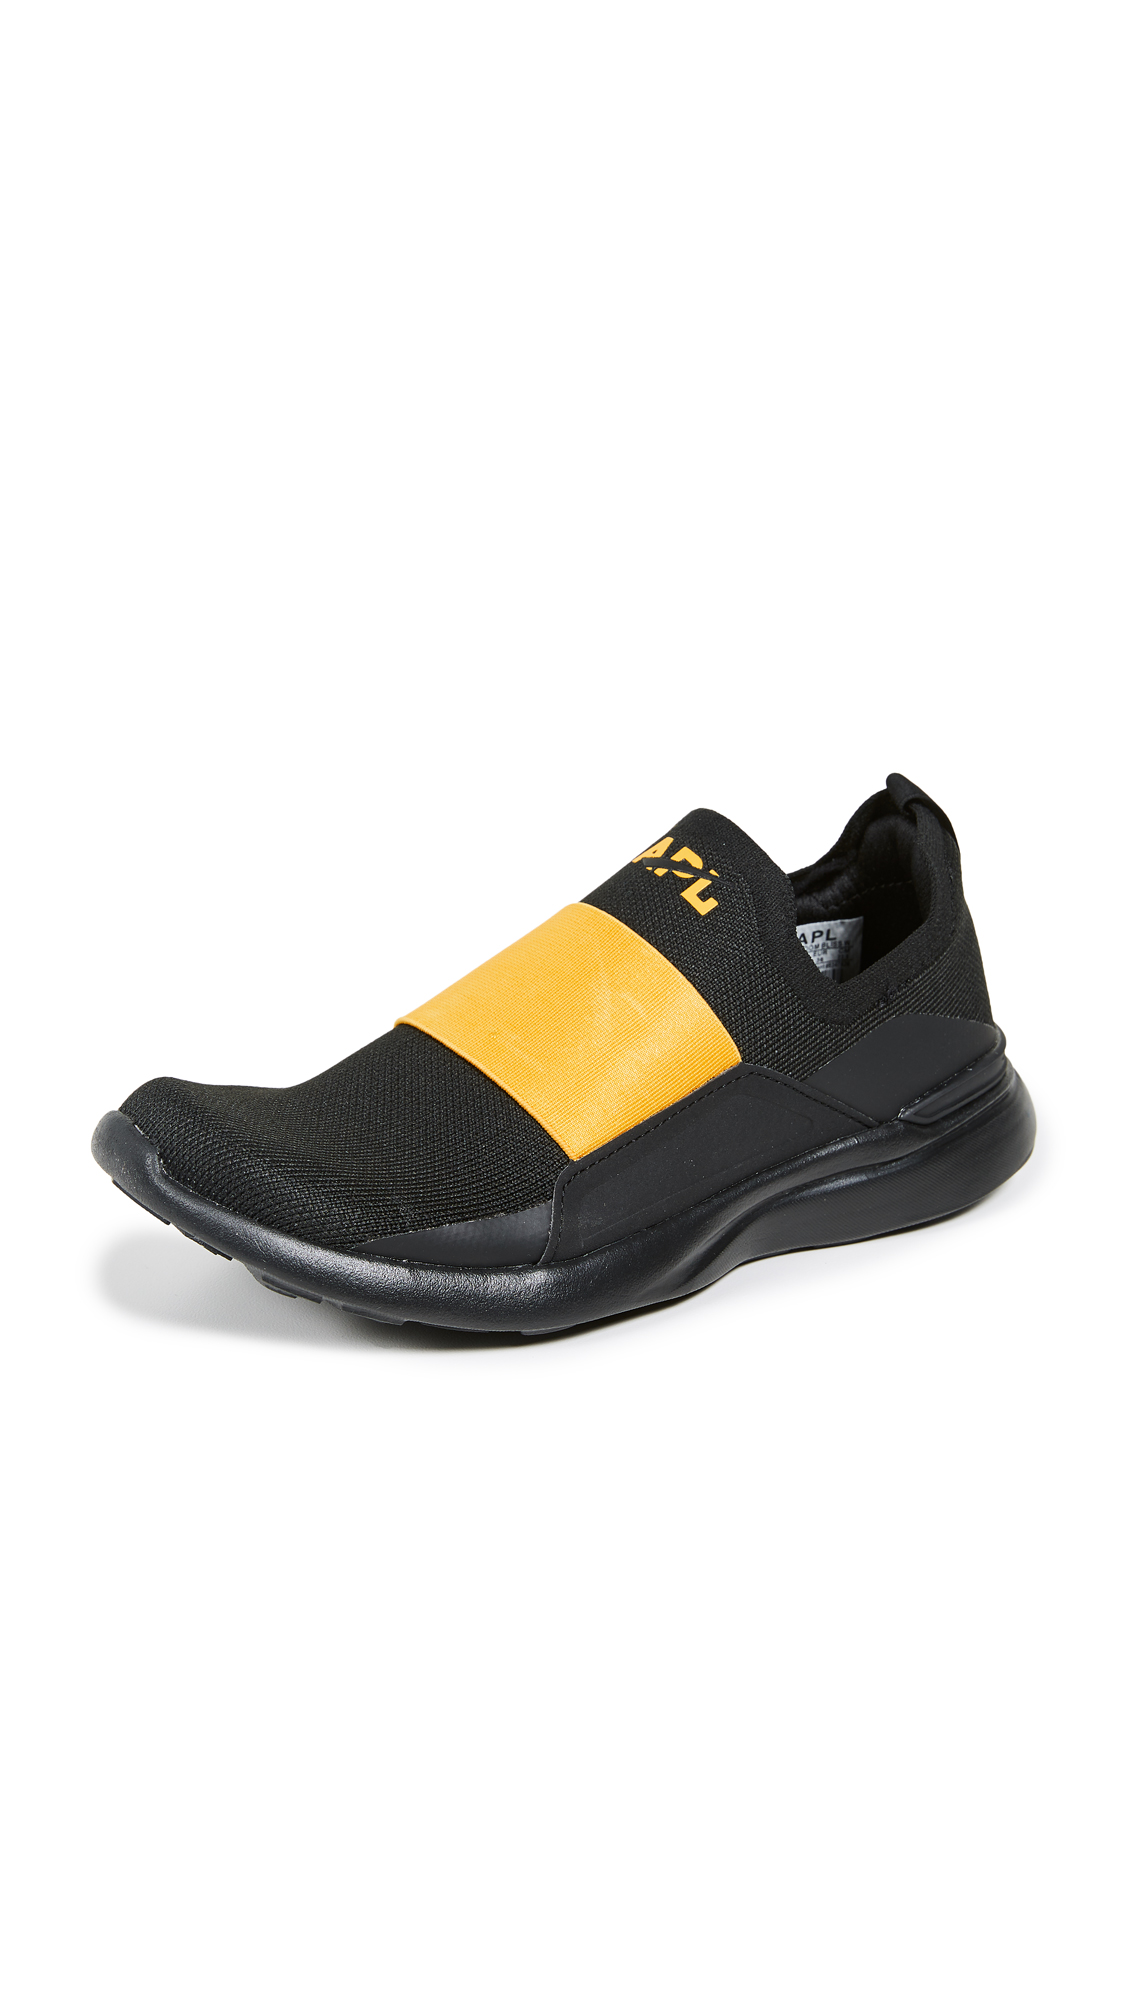 APL: Athletic Propulsion Labs TechLoom Bliss Sneakers - Black/Racing Yellow